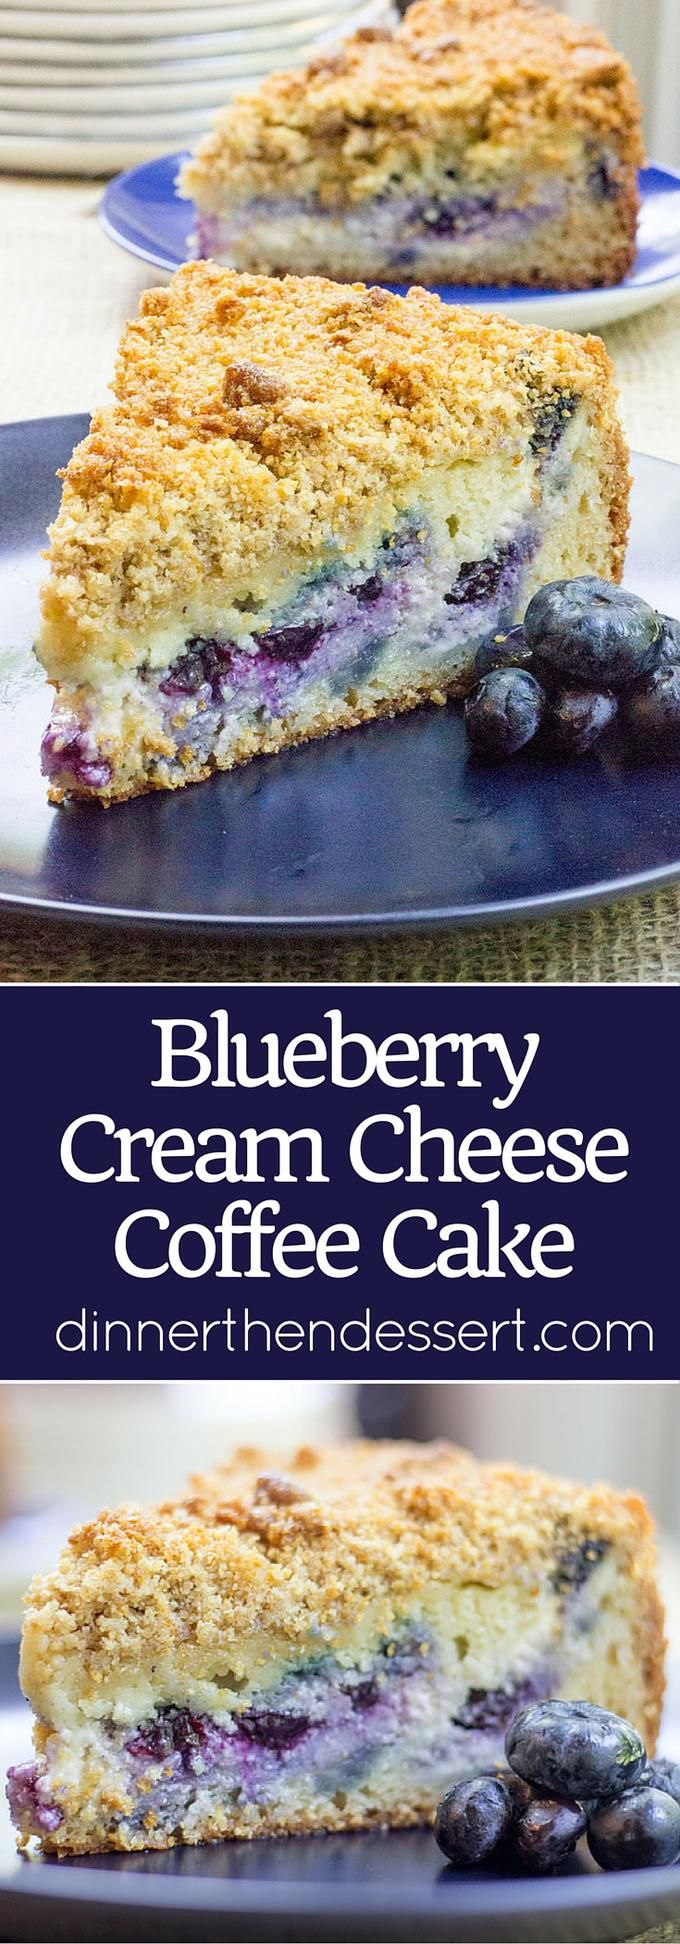 Blueberry Cream Cheese Coffee Cake with a tender center, creamy filling and a crunchy, buttery topping. A perfect mix of crumb coffee cake and cheesecake.